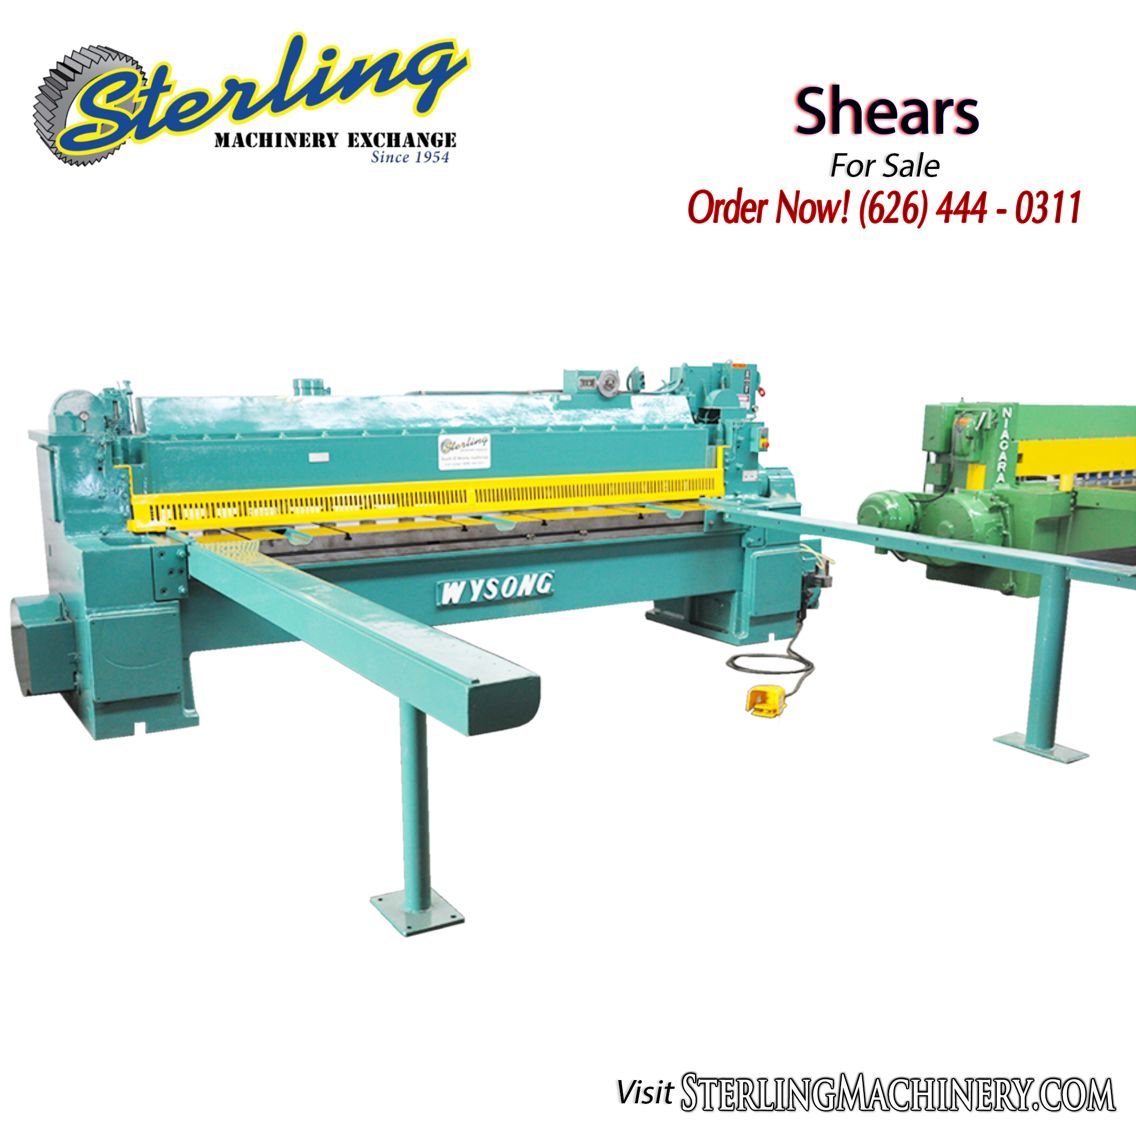 Shears For Sale Sterlingmachinery Com Sterlingmachinery Shears Shear Surely Powershear Metalworking Fabricate Fabrica With Images Metal Working Press Brake Shears